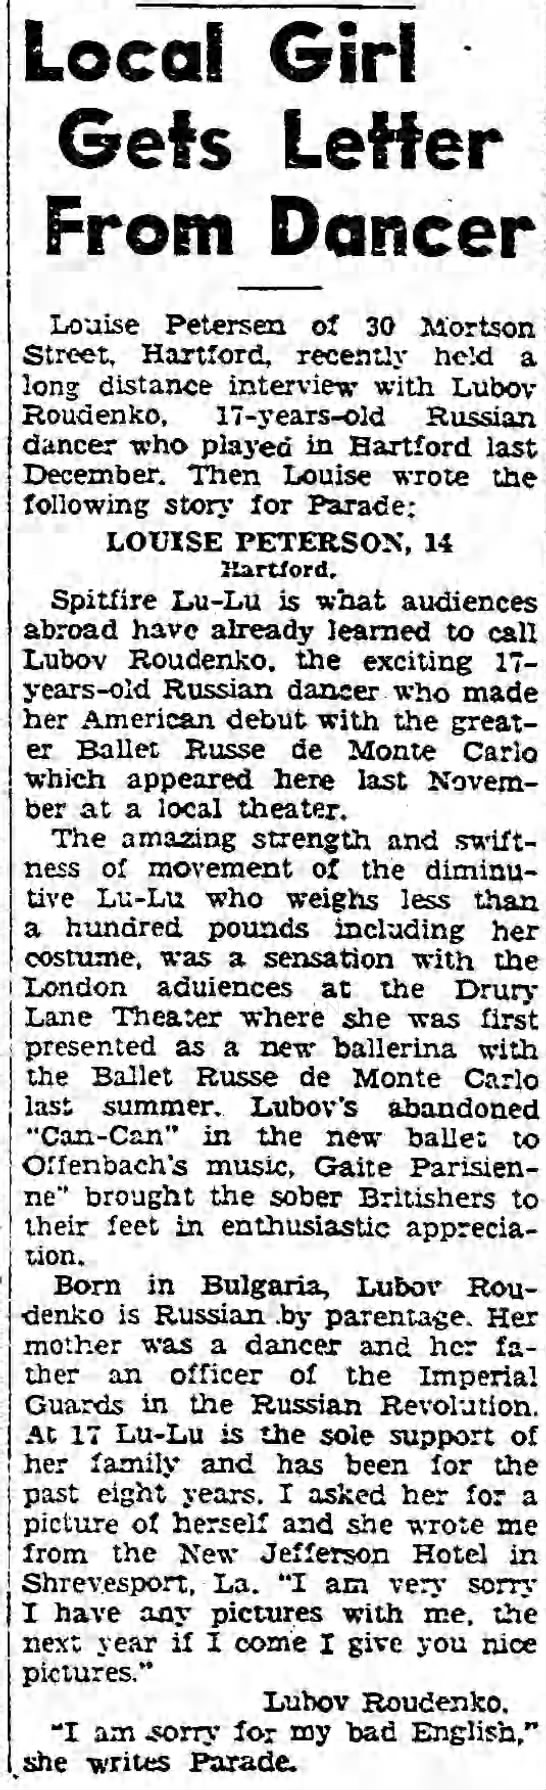 Local Girl Gets Letter from Dancer. The Hartford Courant (Hartford, Connecticut) 9 July 1939, p 41 -